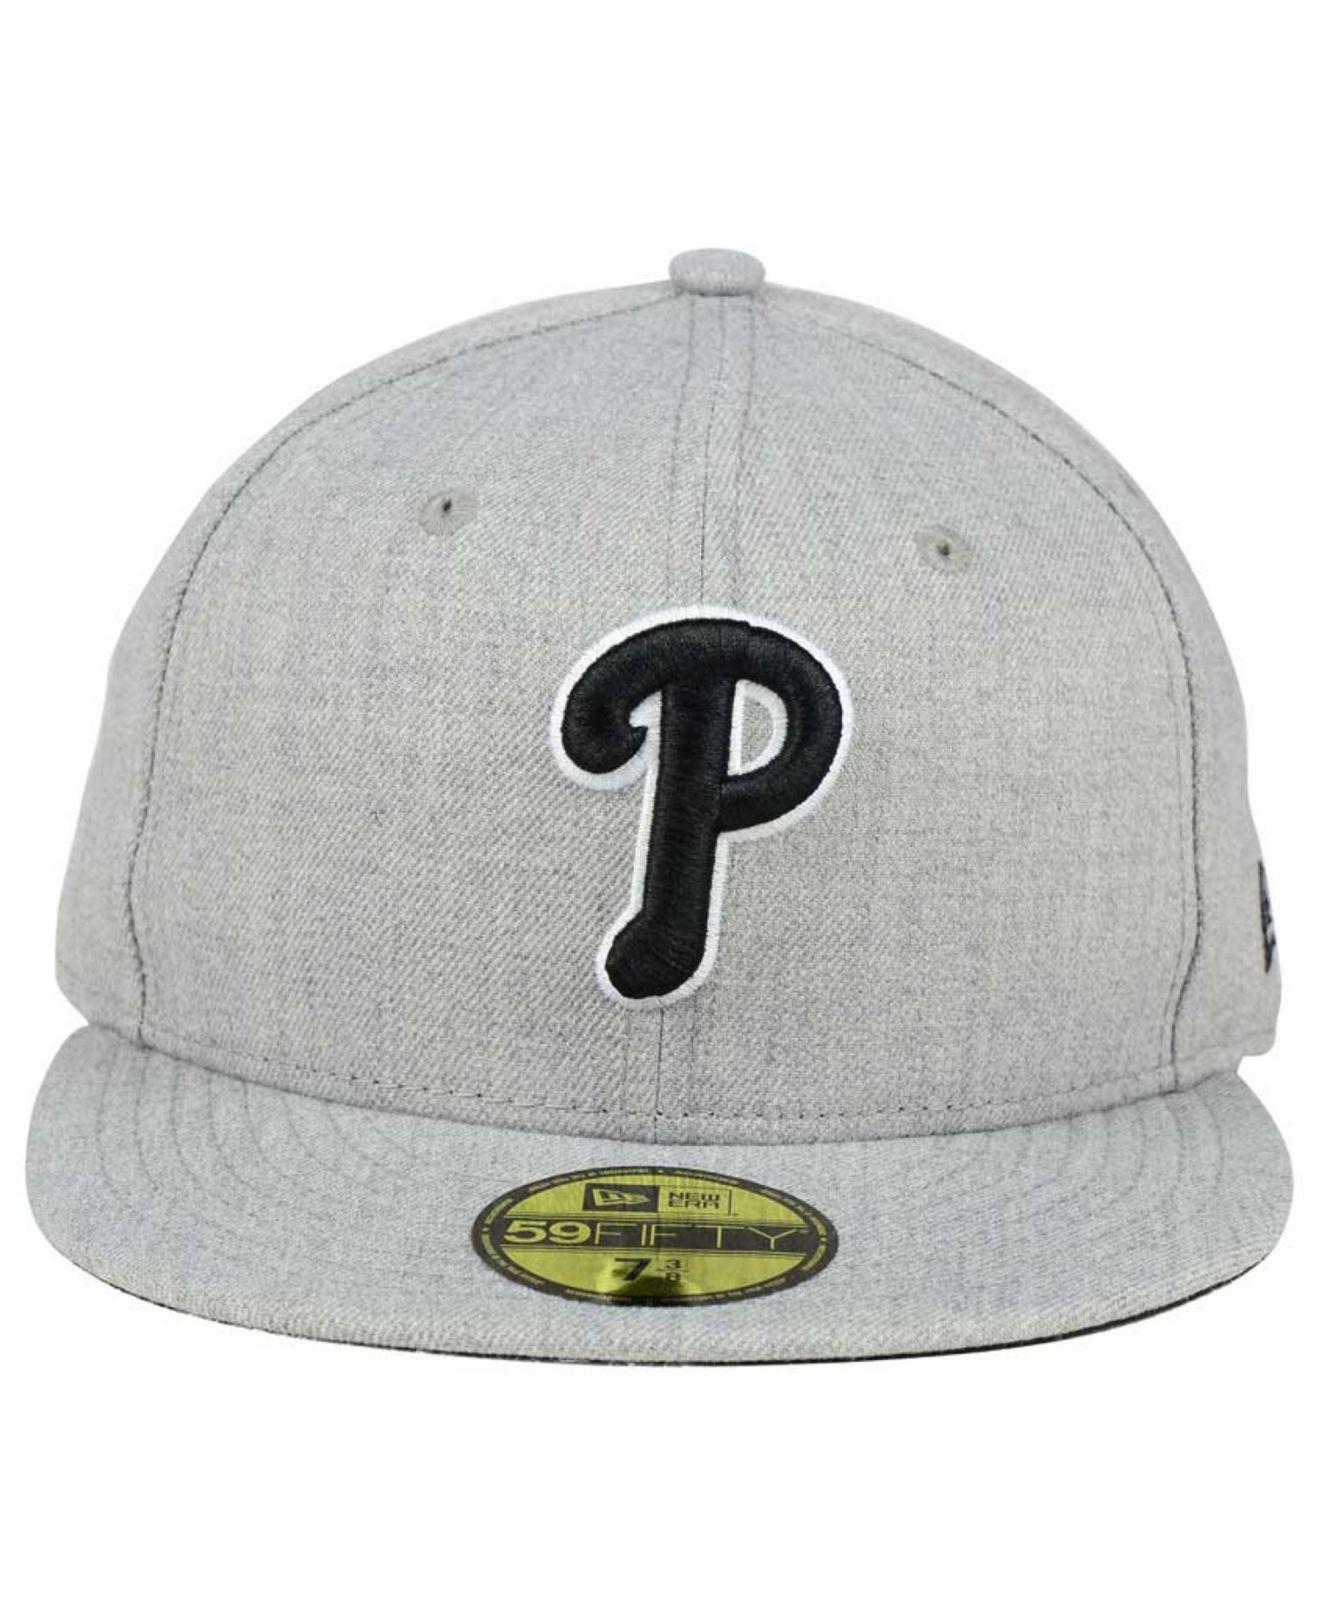 911cecb4f34c1 ... sale lyst ktz philadelphia phillies heather black white 59fifty fitted  cap in gray for men c8552